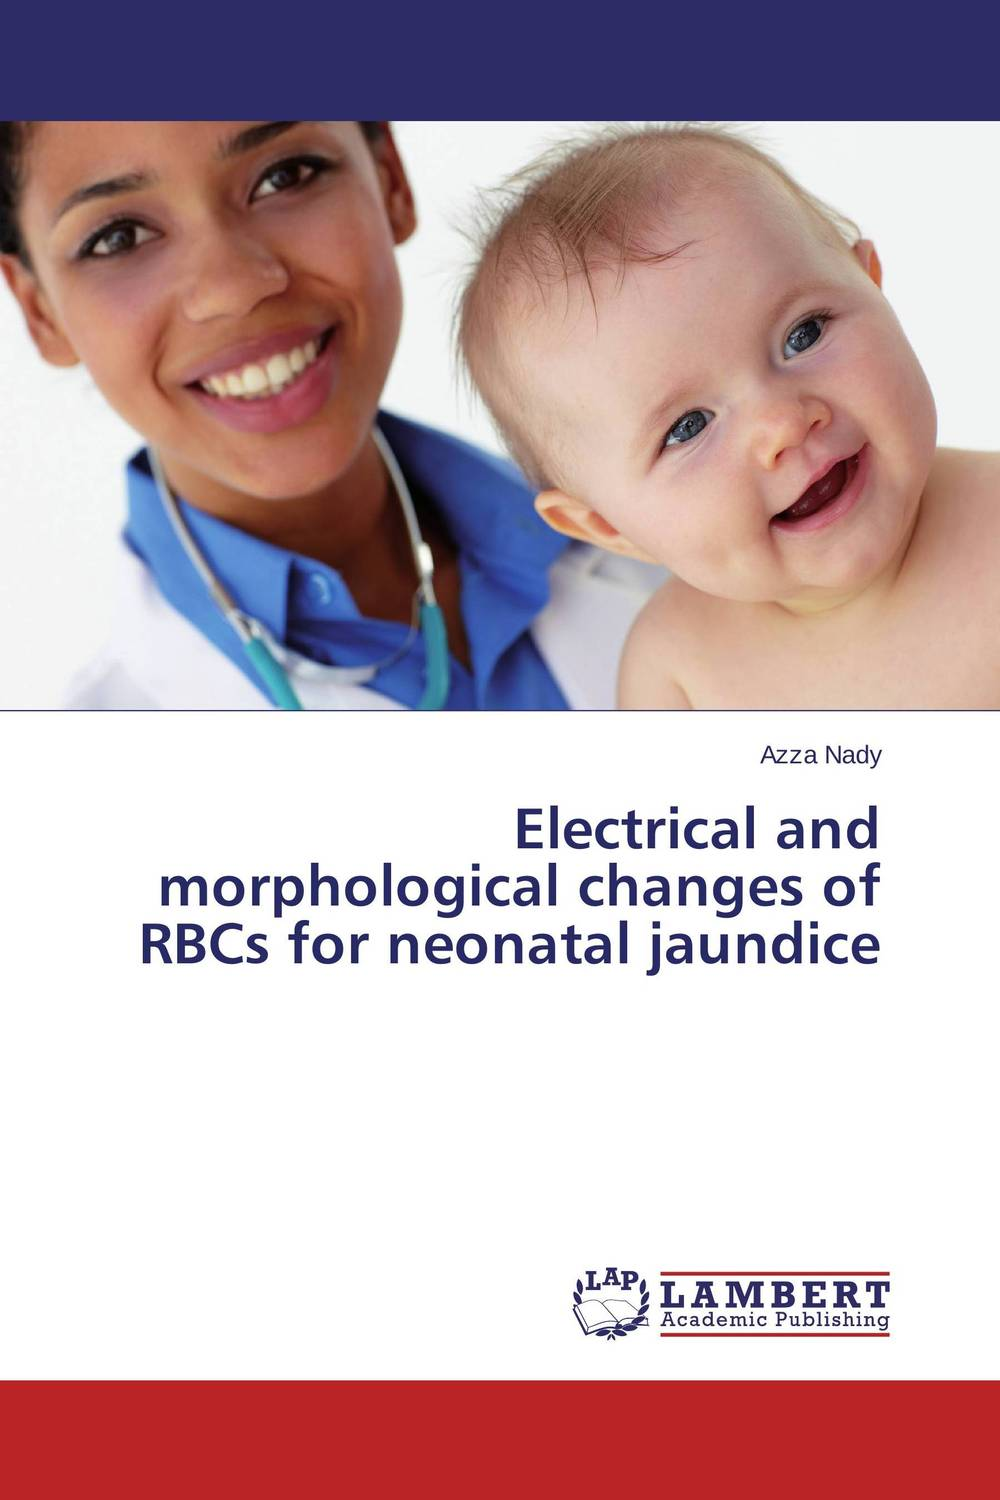 Electrical and morphological changes of RBCs for neonatal jaundice cardiovascular changes and unconjugated hyperbilirubinemia in neonates